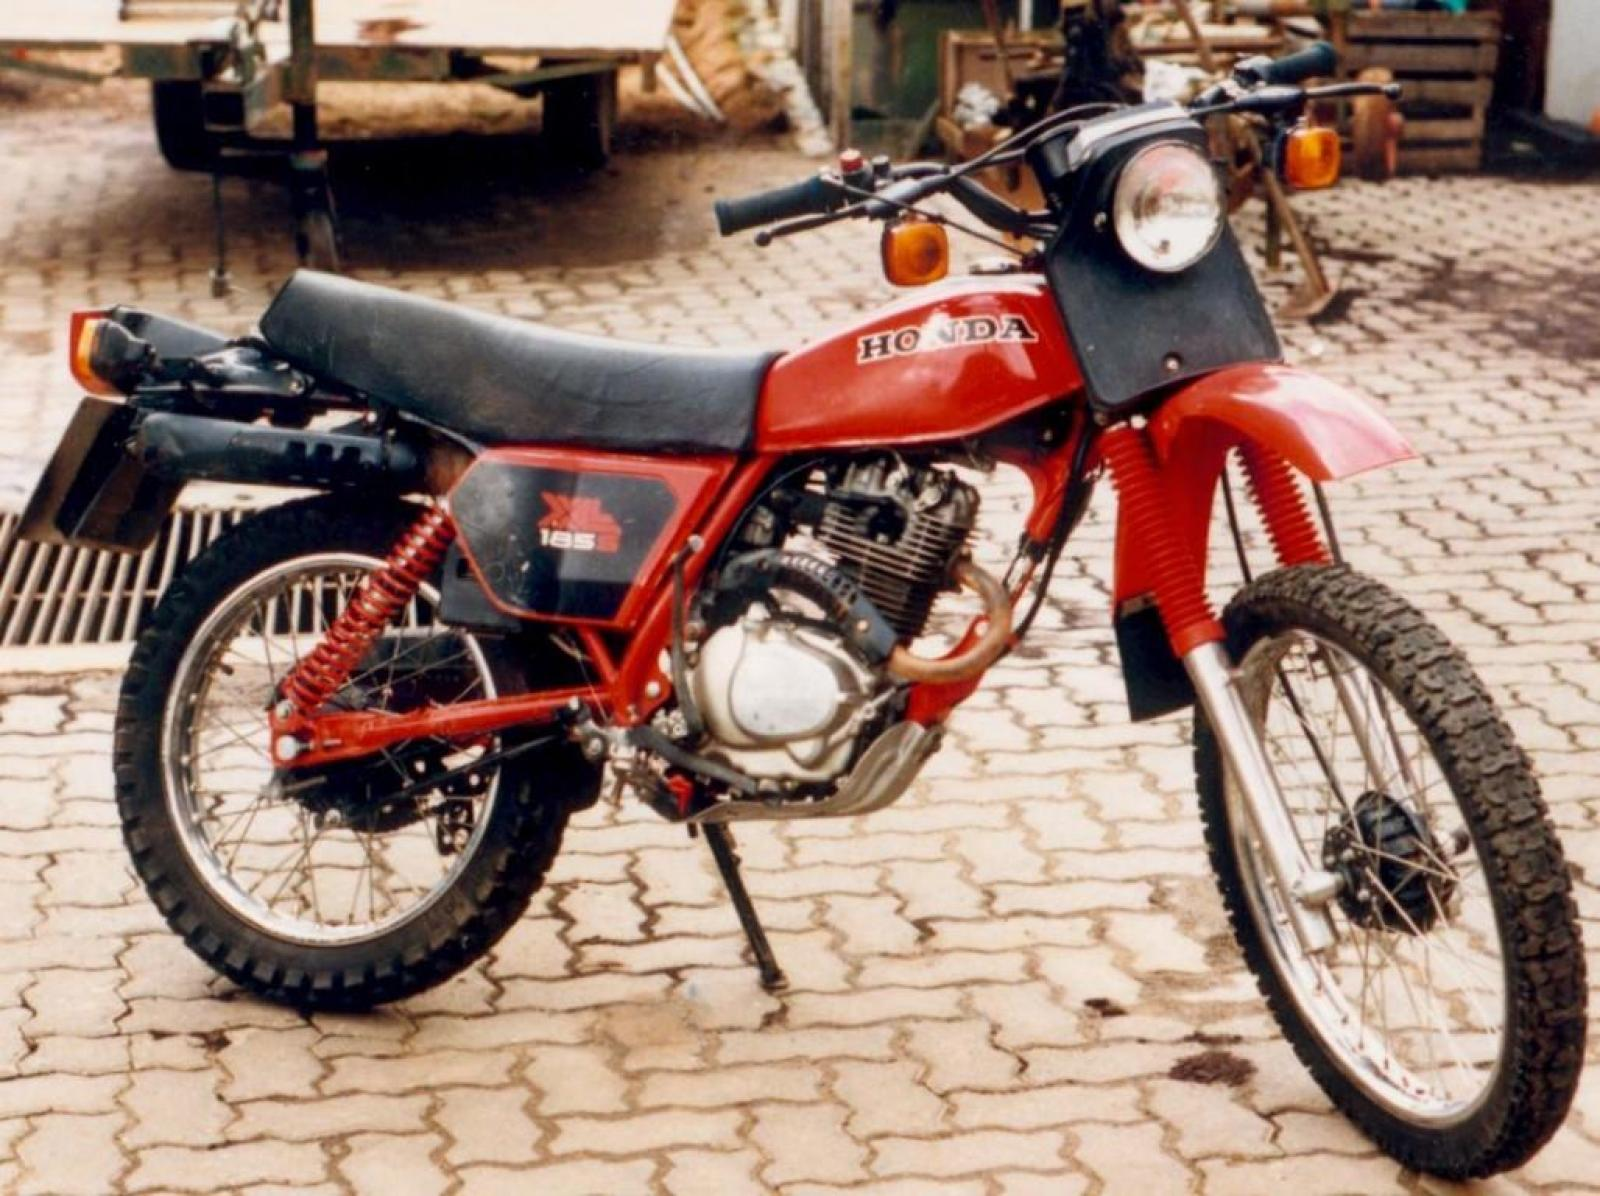 honda xl 100 html with 1983 Honda Xl185s Reduced Effect on 1973 Honda Xl 285 as well Repair And Service Manuals in addition Skoda Kodiaq Sportline together with 9745 1964 ford galaxy 500 also Xl 650 transalp 2003.